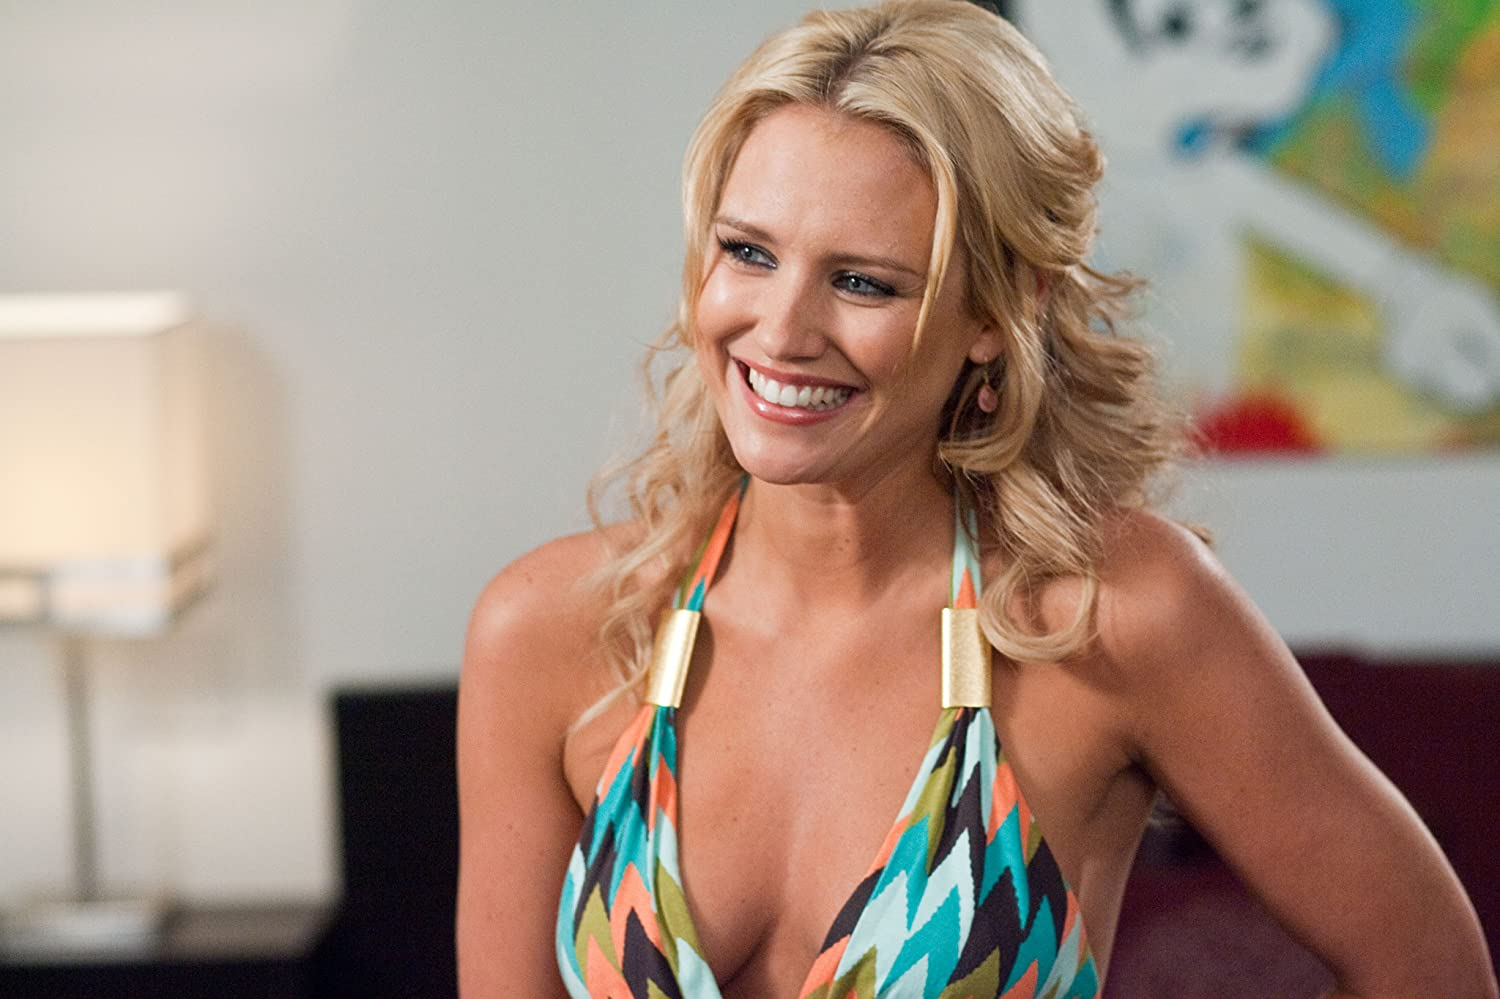 Gallery images and information nicky whelan hall pass gif - Gallery Images And Information Nicky Whelan Hall Pass Gif 3